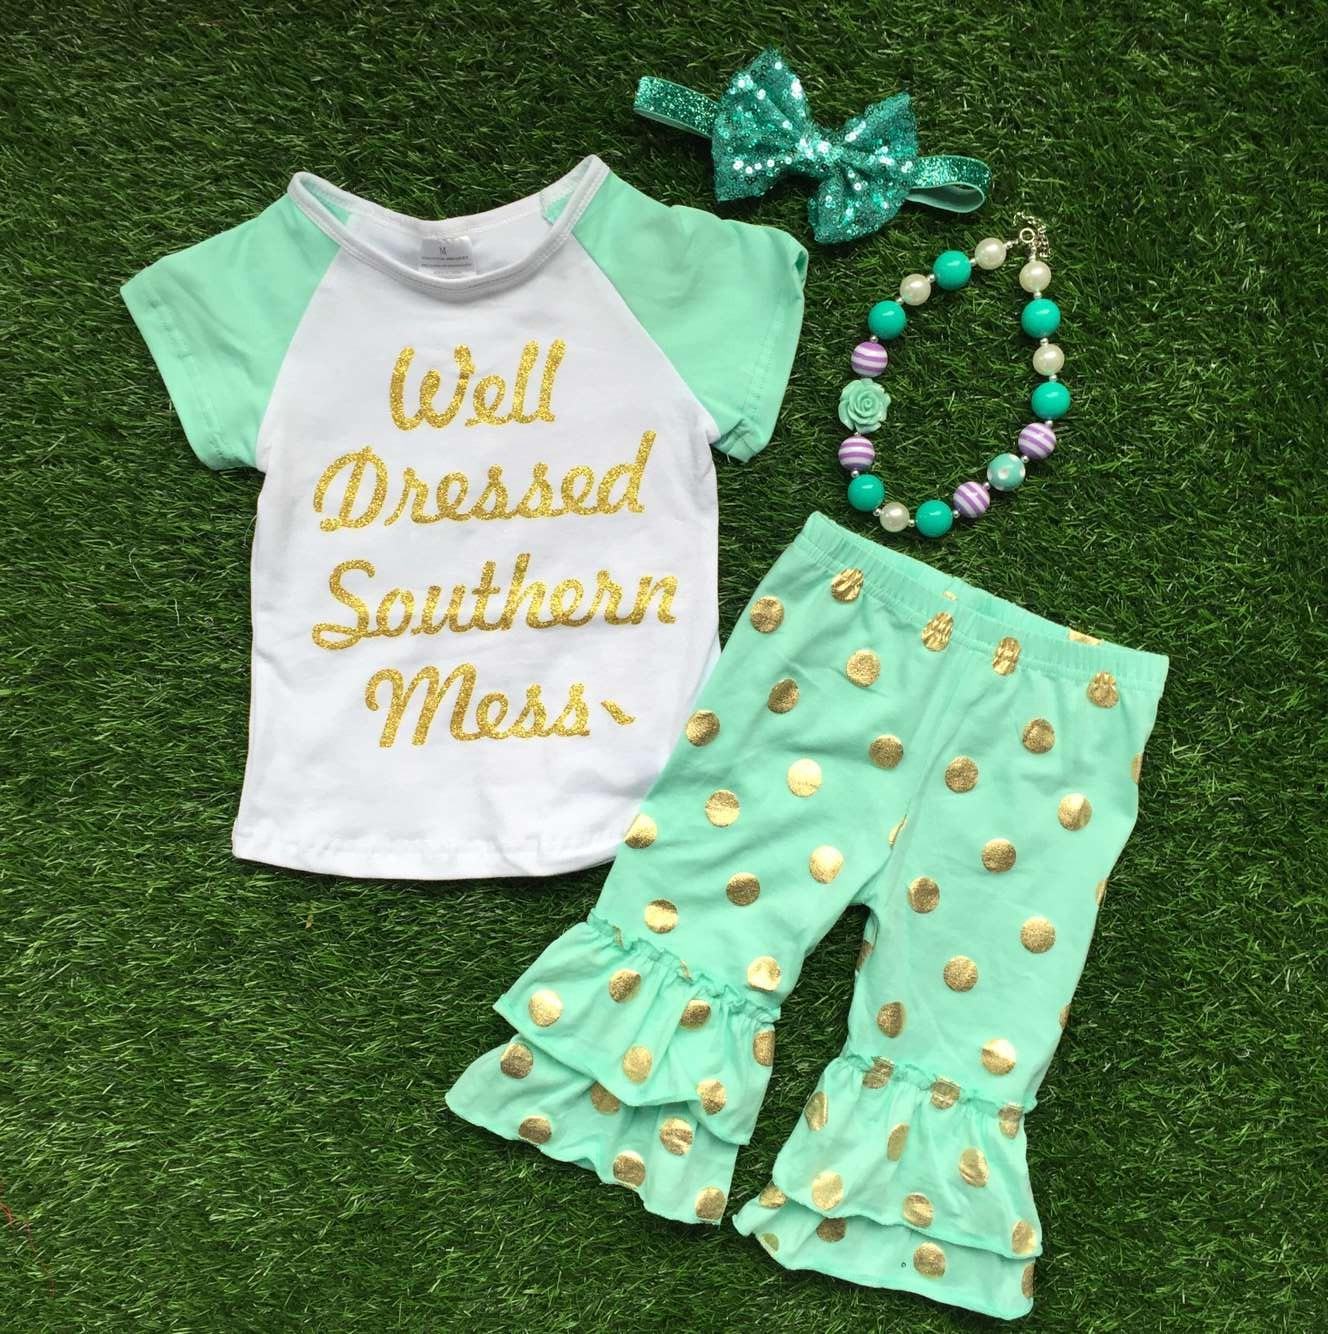 Shirt design for baby girl - 2016 Summer Design Girls Baby Style Hot Gold Dot Well Dressed Capri Outfit Child Clothing With Matching Necklace And Bow Baby Clothes Summer Outfit Boutique